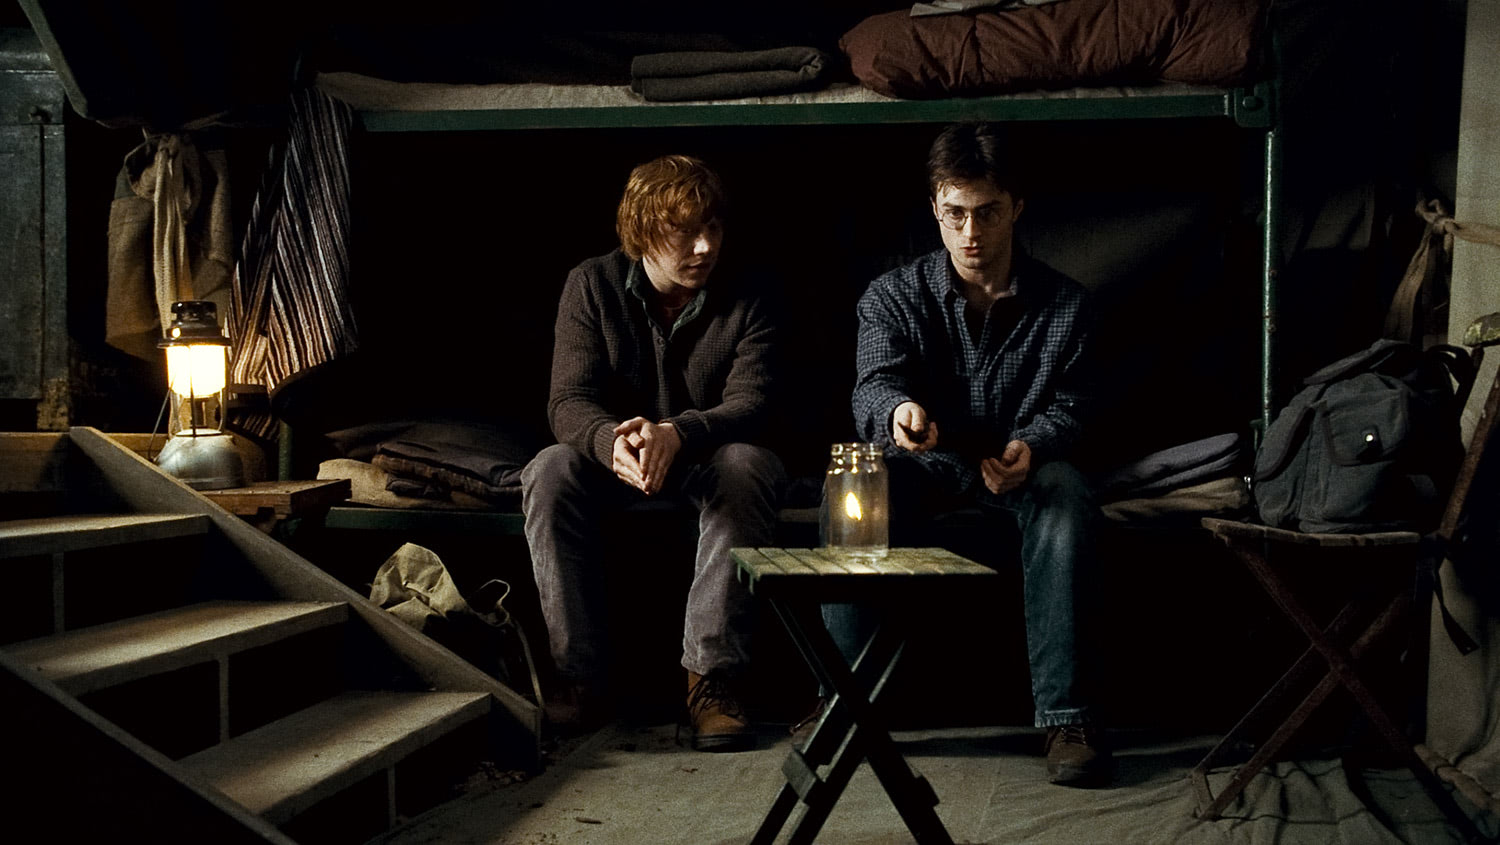 Harry and Ron make fire